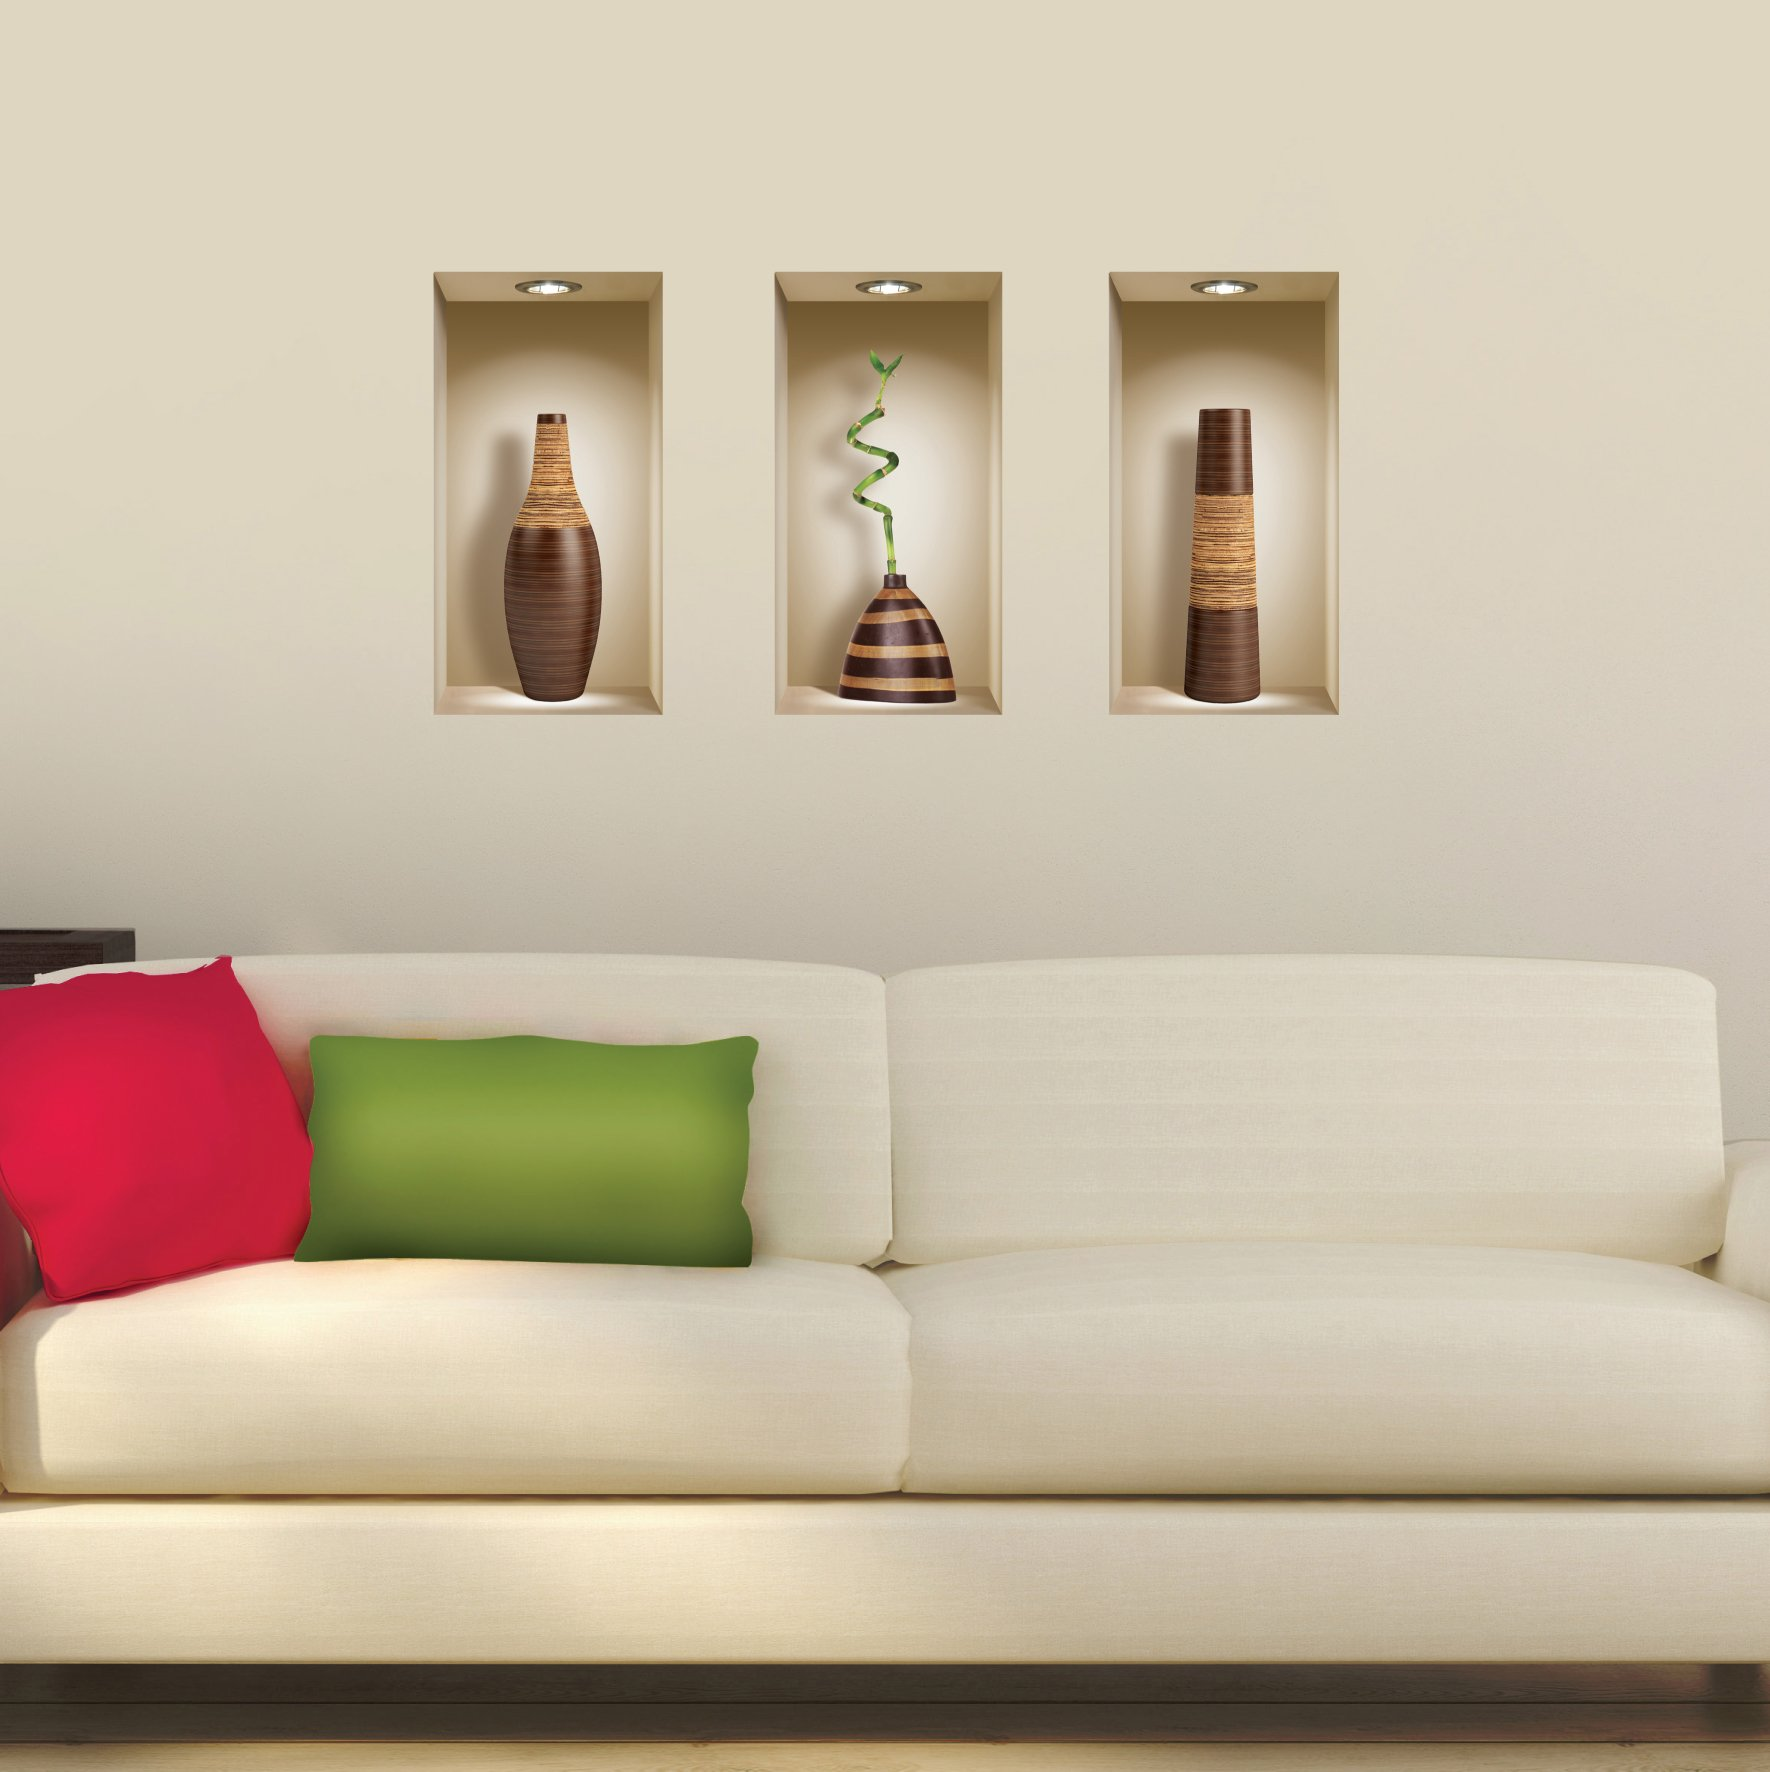 The Nisha Art Magic 3D Vinyl Removable Wall Sticker Decals DIY, Set of 3, Brown Vases by the Nisha (Image #2)